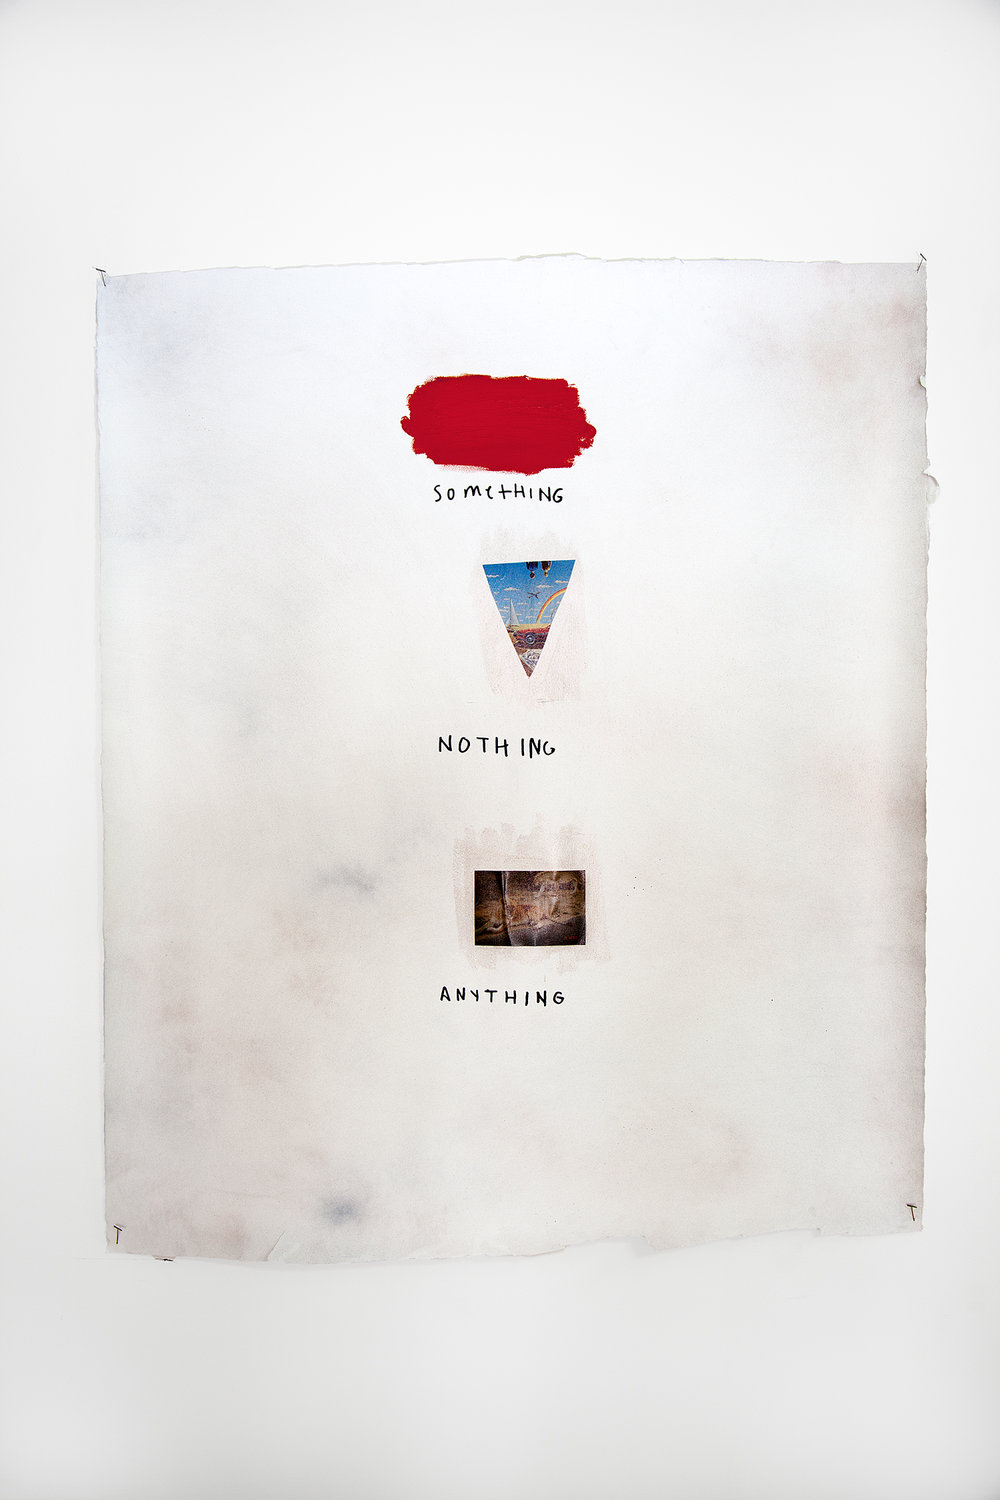 Something Nothing Anything , 2018, mixed media on watercolor paper, 51 x 44 in